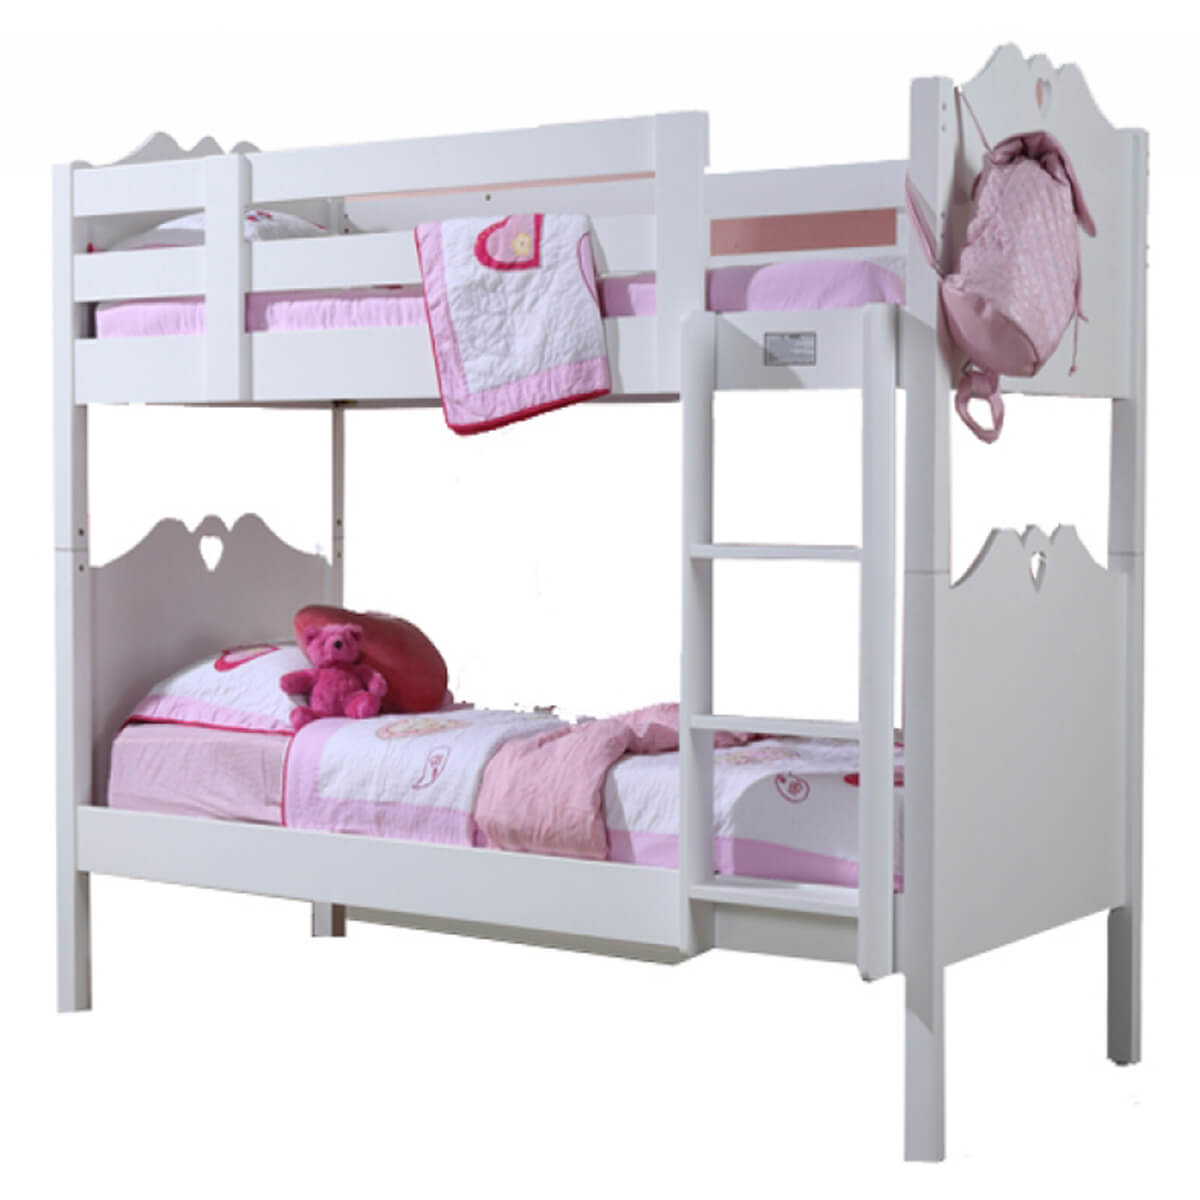 Holly White Wooden Bunk Bed With Heart Motif Childrens Beds Fads